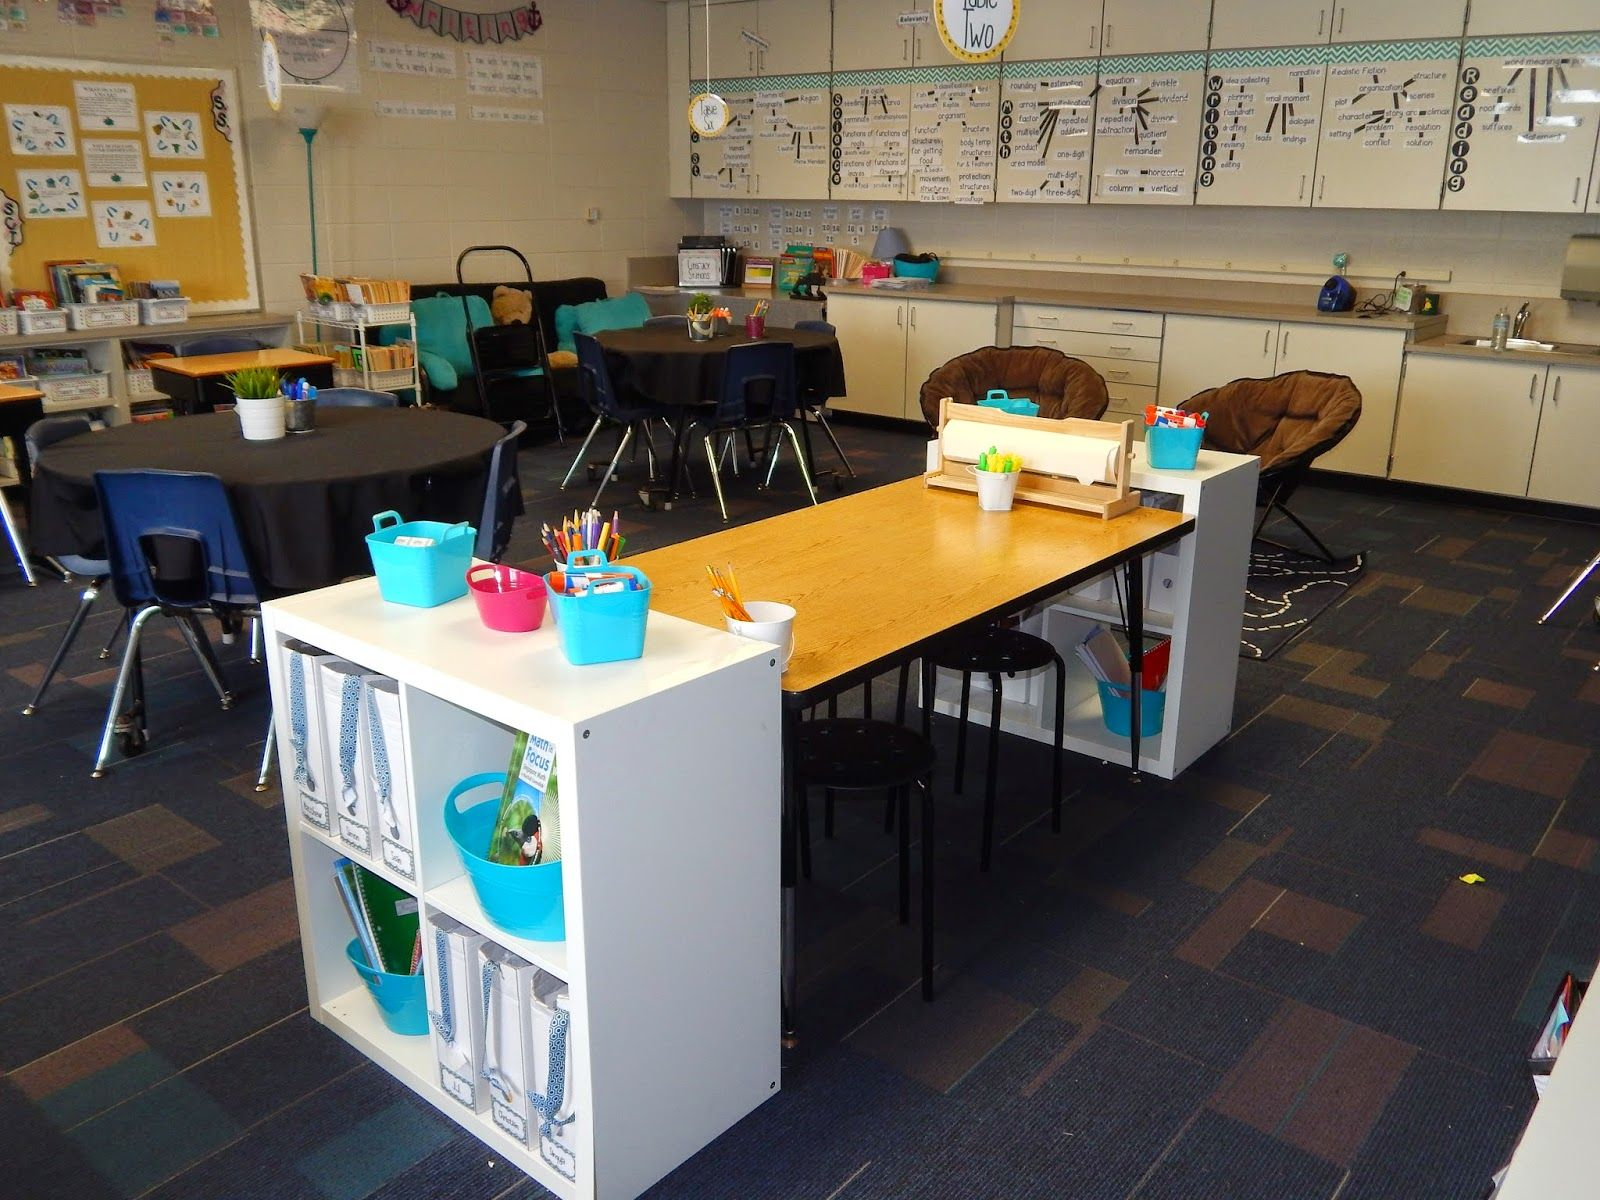 Deeper Learning A Collaborative Classroom Is Key ~ New classroom set up encouraging self directed learning